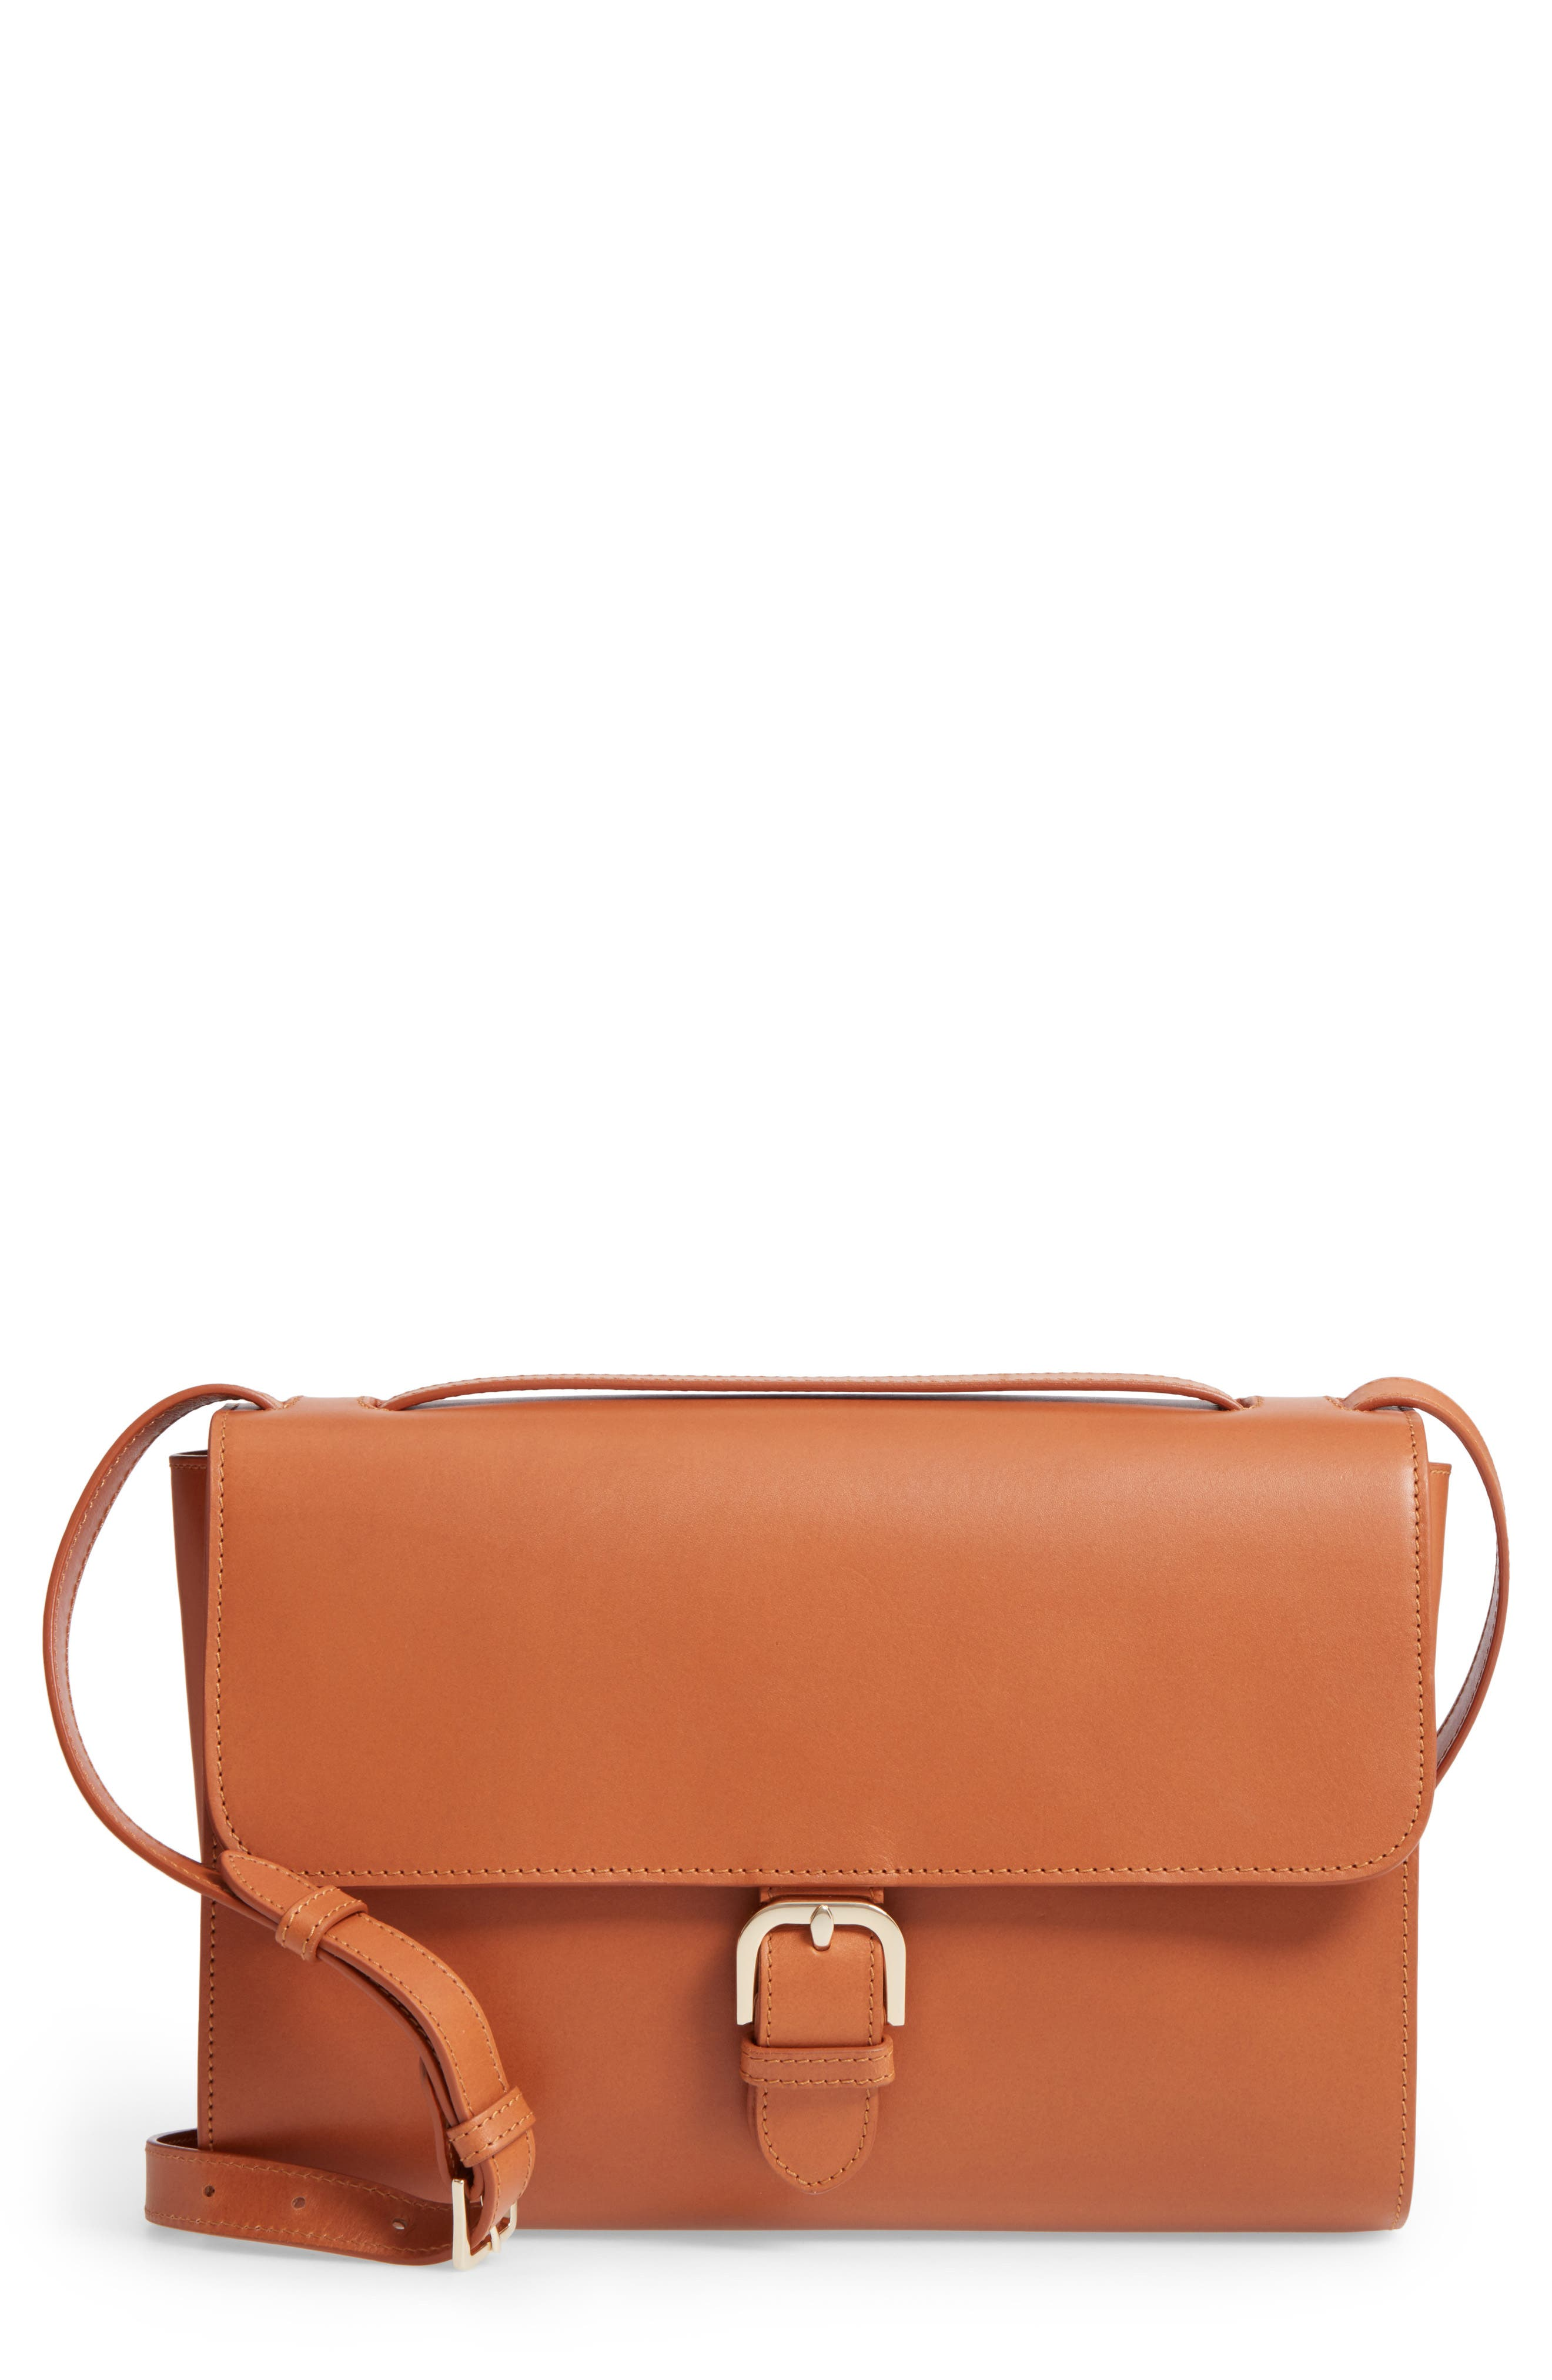 A.P.C. Katy Calfskin Leather Messenger Bag